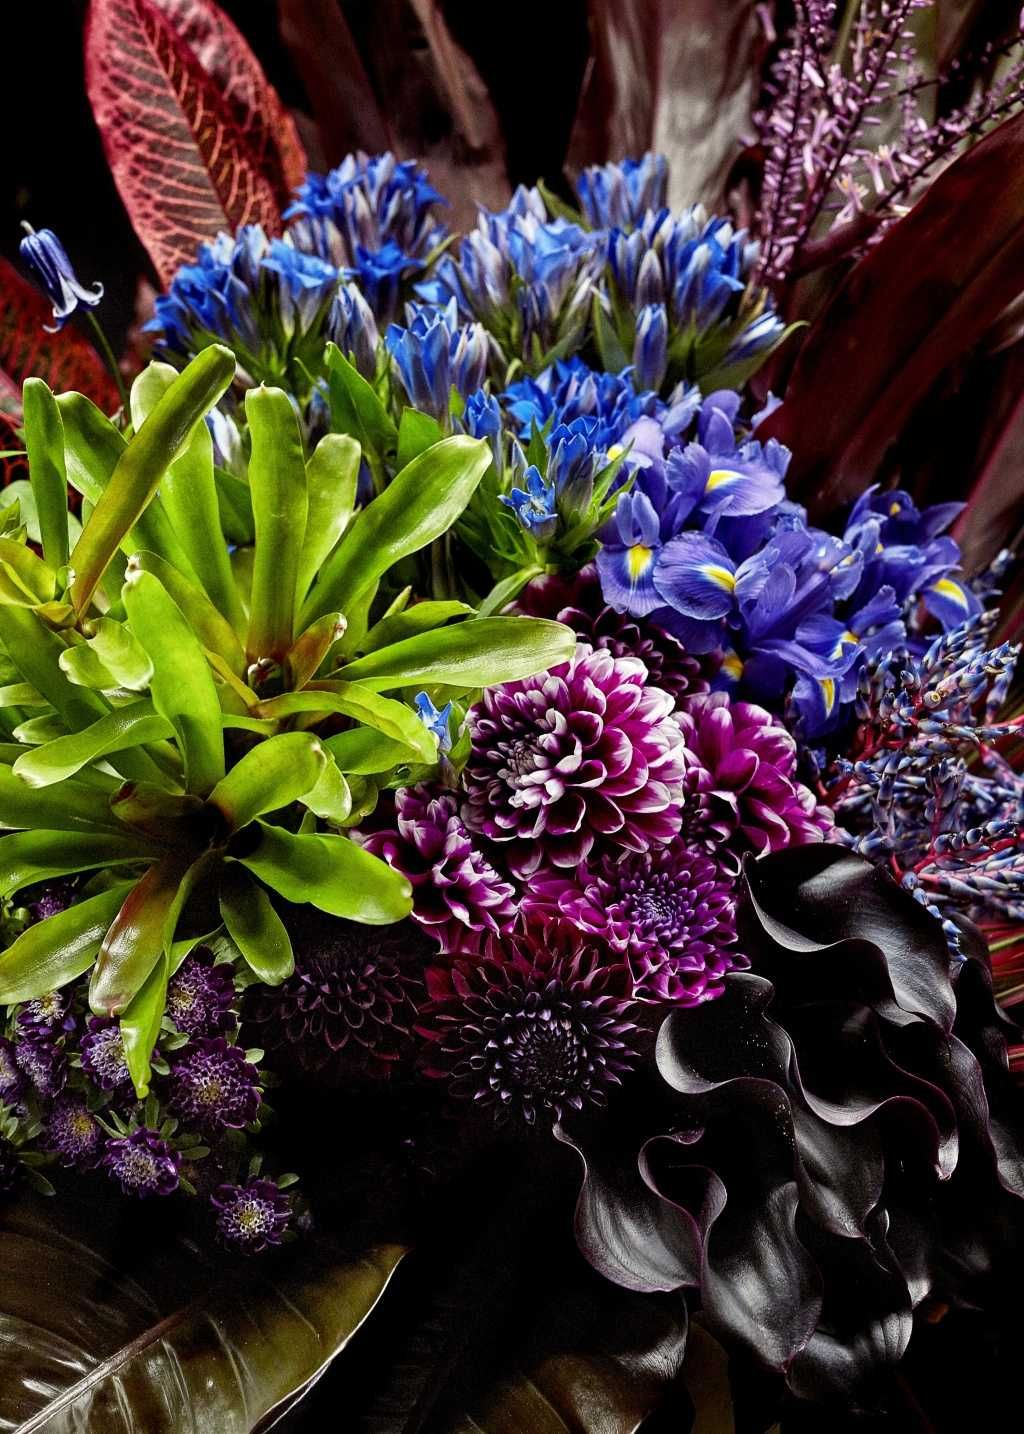 Pin By Lady Linda On Midnight Garden Flower Art Blooming Flowers Flowers